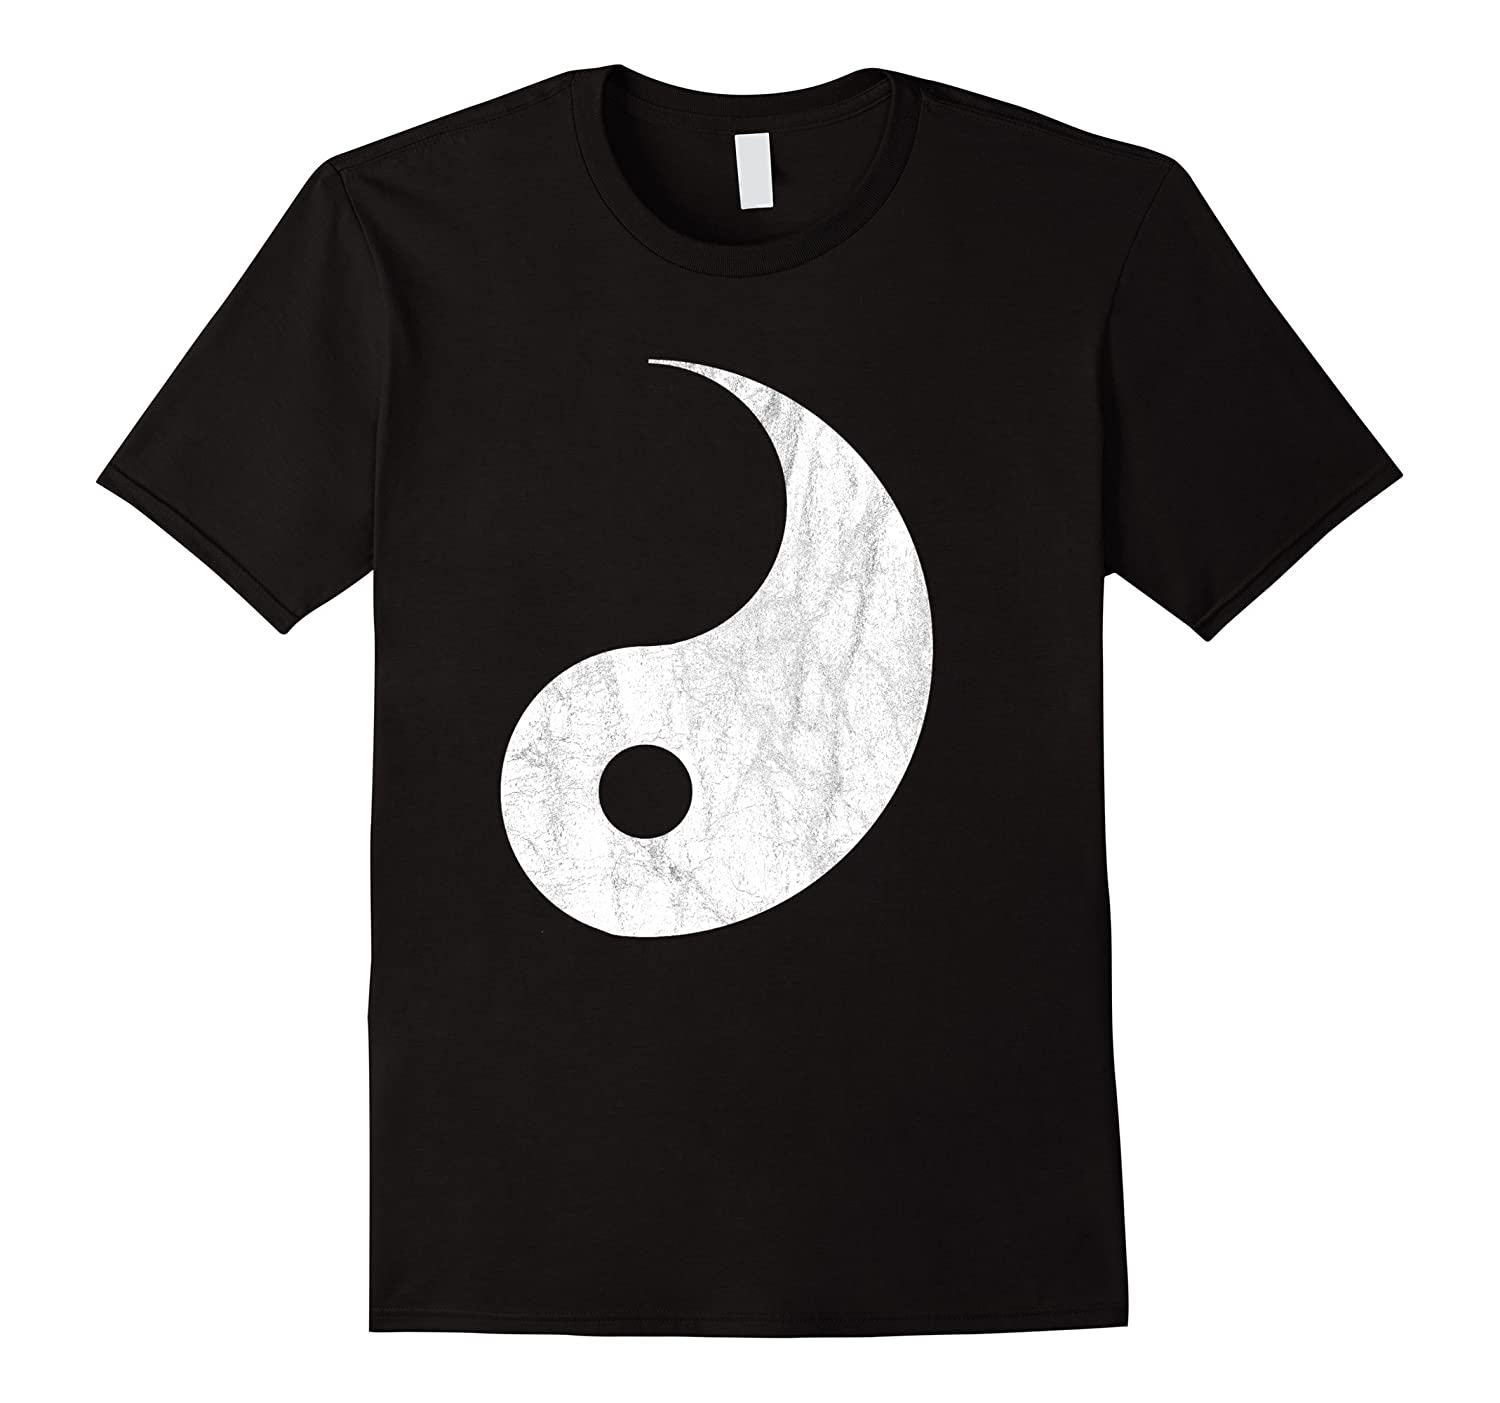 Yin Yang Halloween T-shirt Couples Costume for Adults Kids-T-Shirt